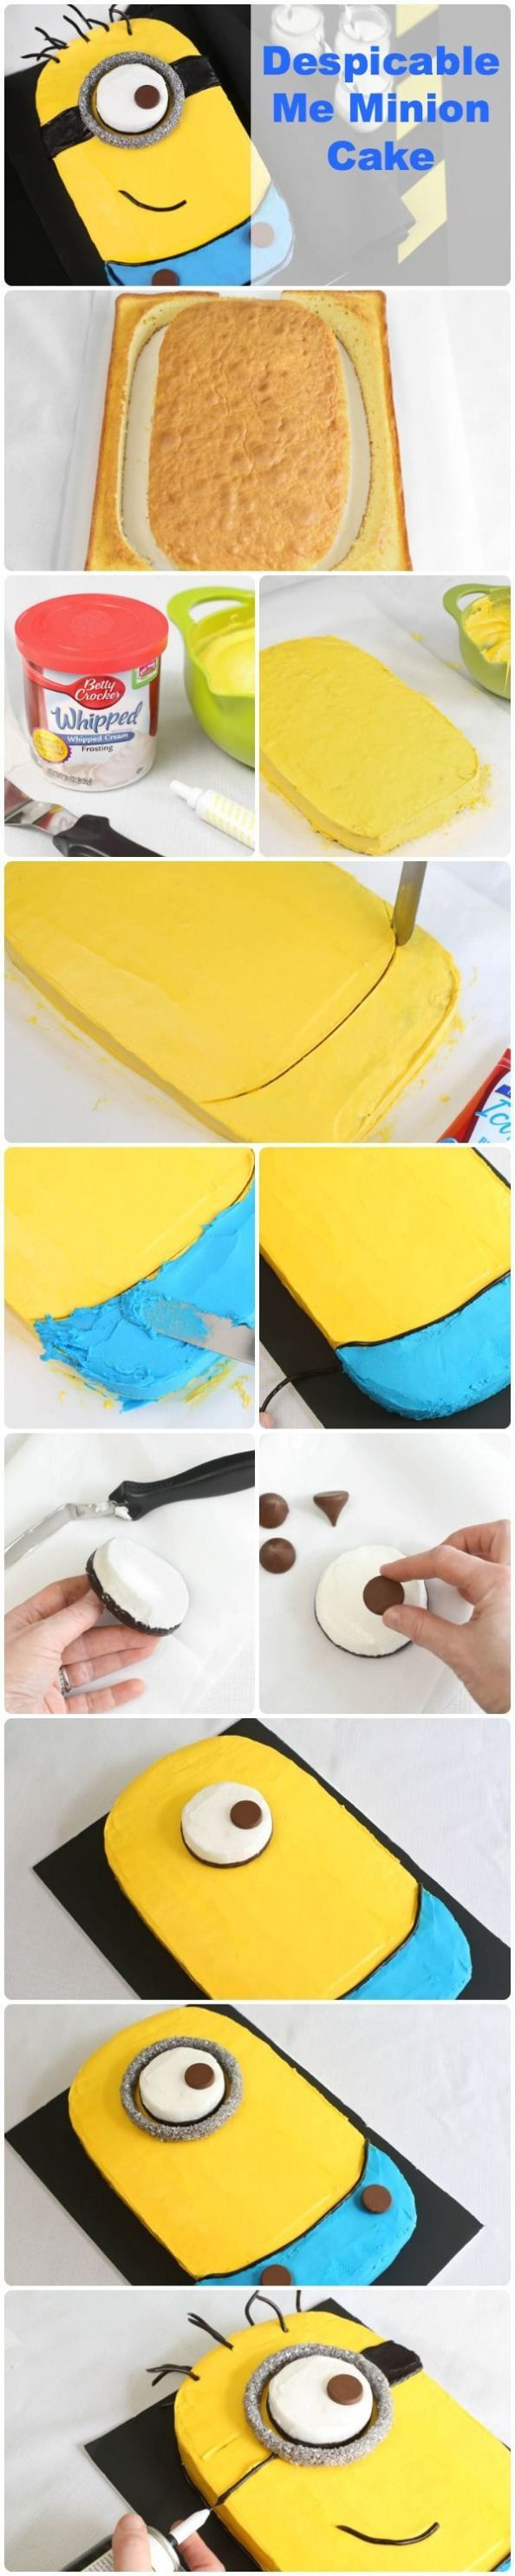 Despicable Me minion cake! This is all the instructions.